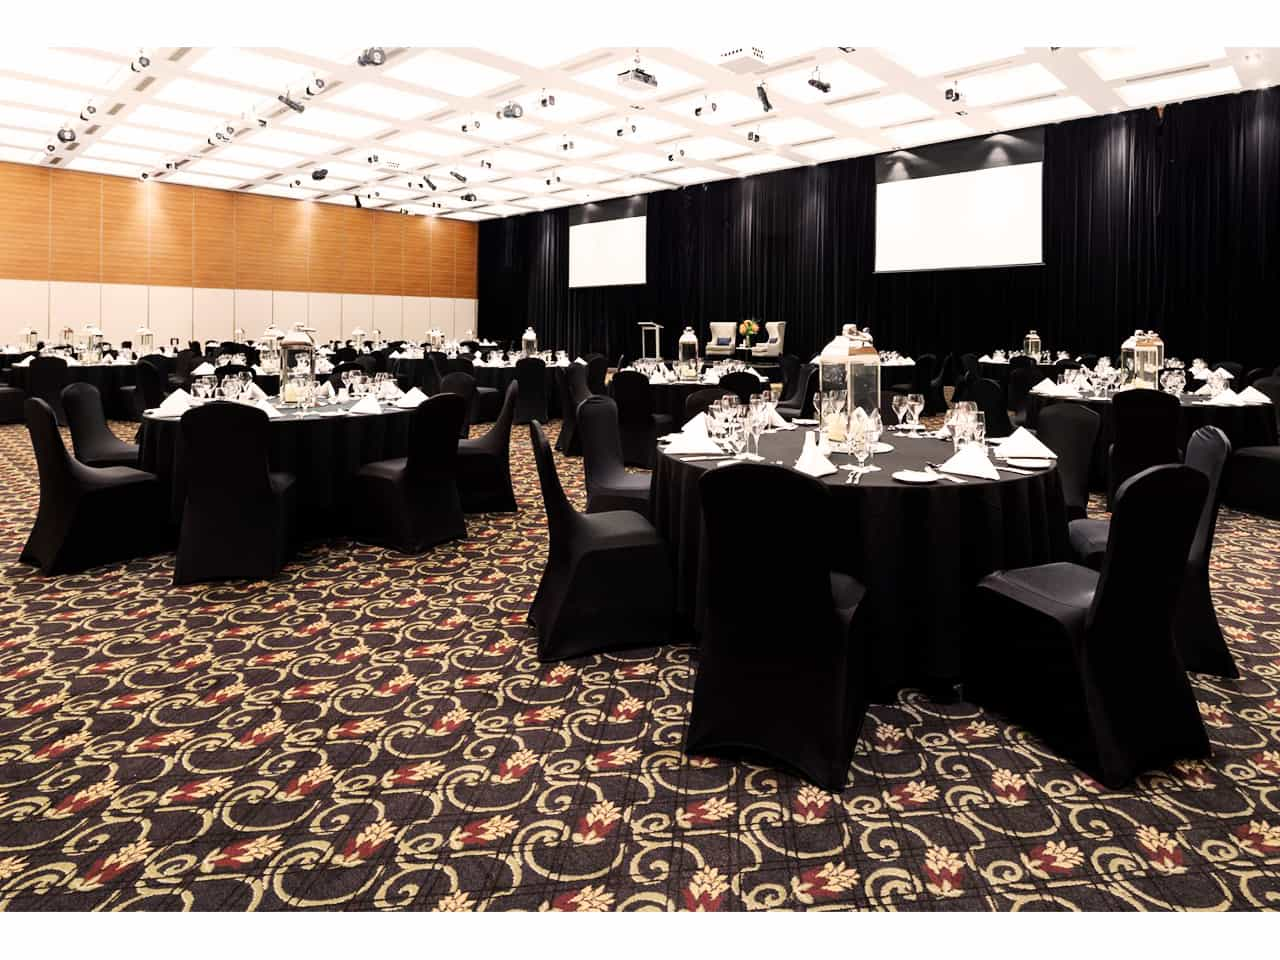 Banquet style function